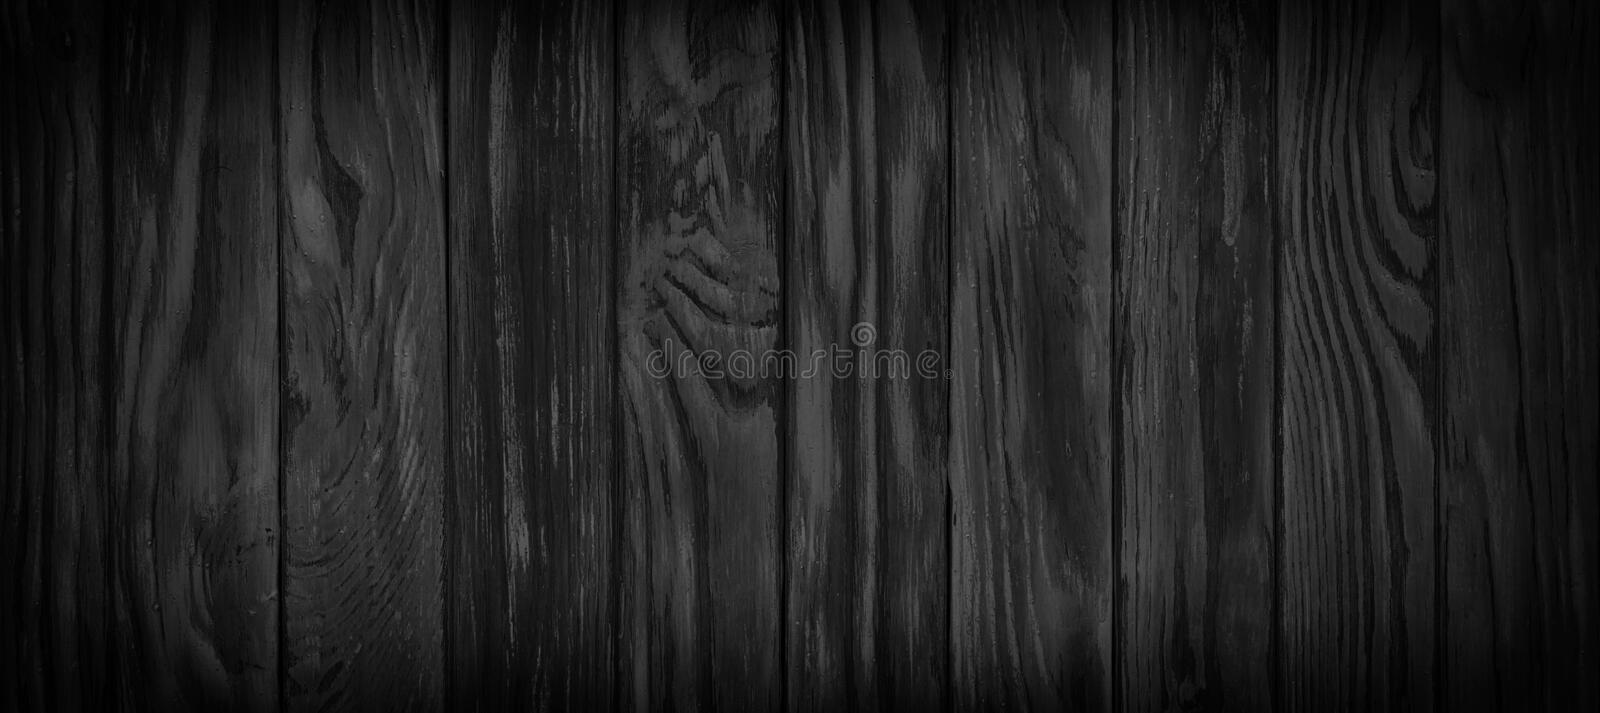 Panorama of black wooden boards, gloomy wood texture, dark background royalty free stock photos